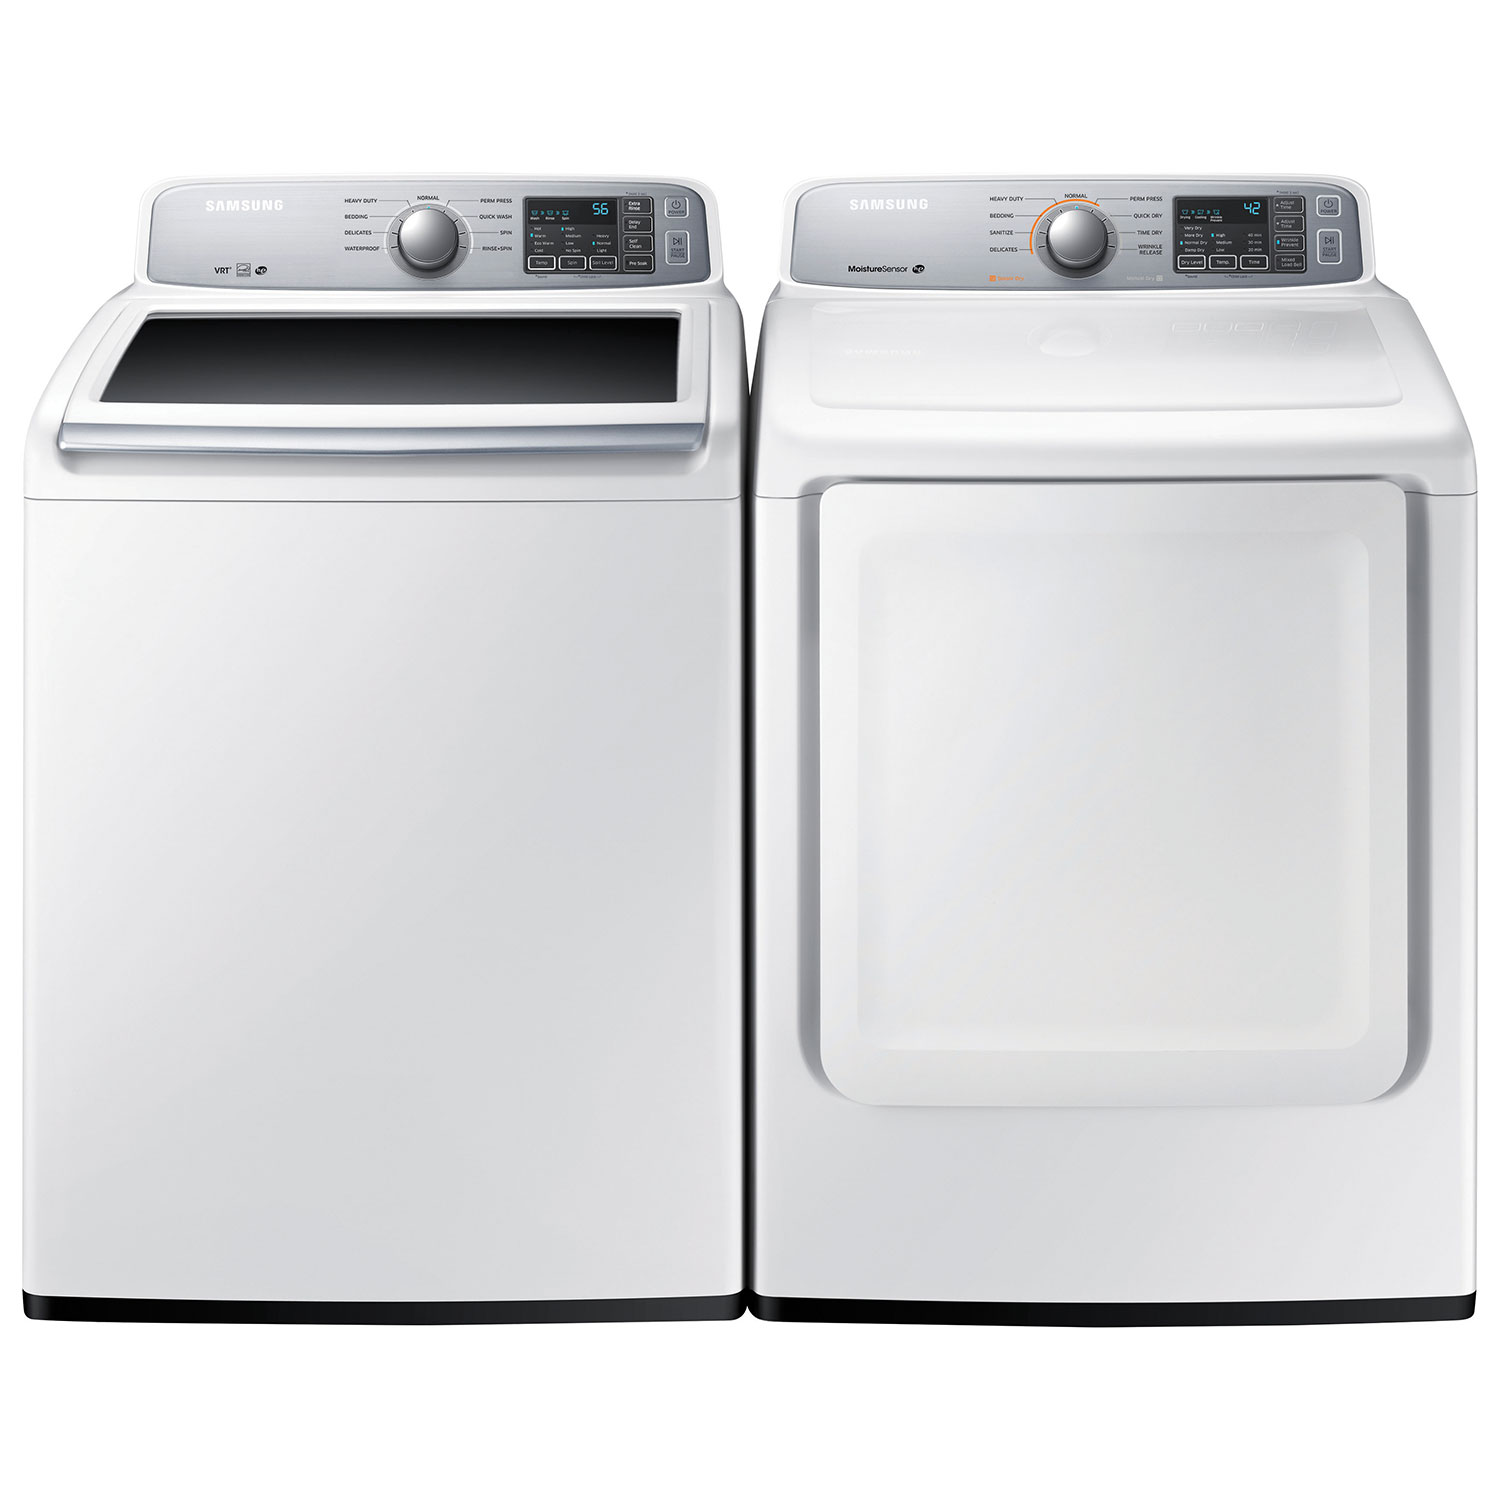 ft high efficiency top load washer white washers best buy canada - Top Load Washer Reviews